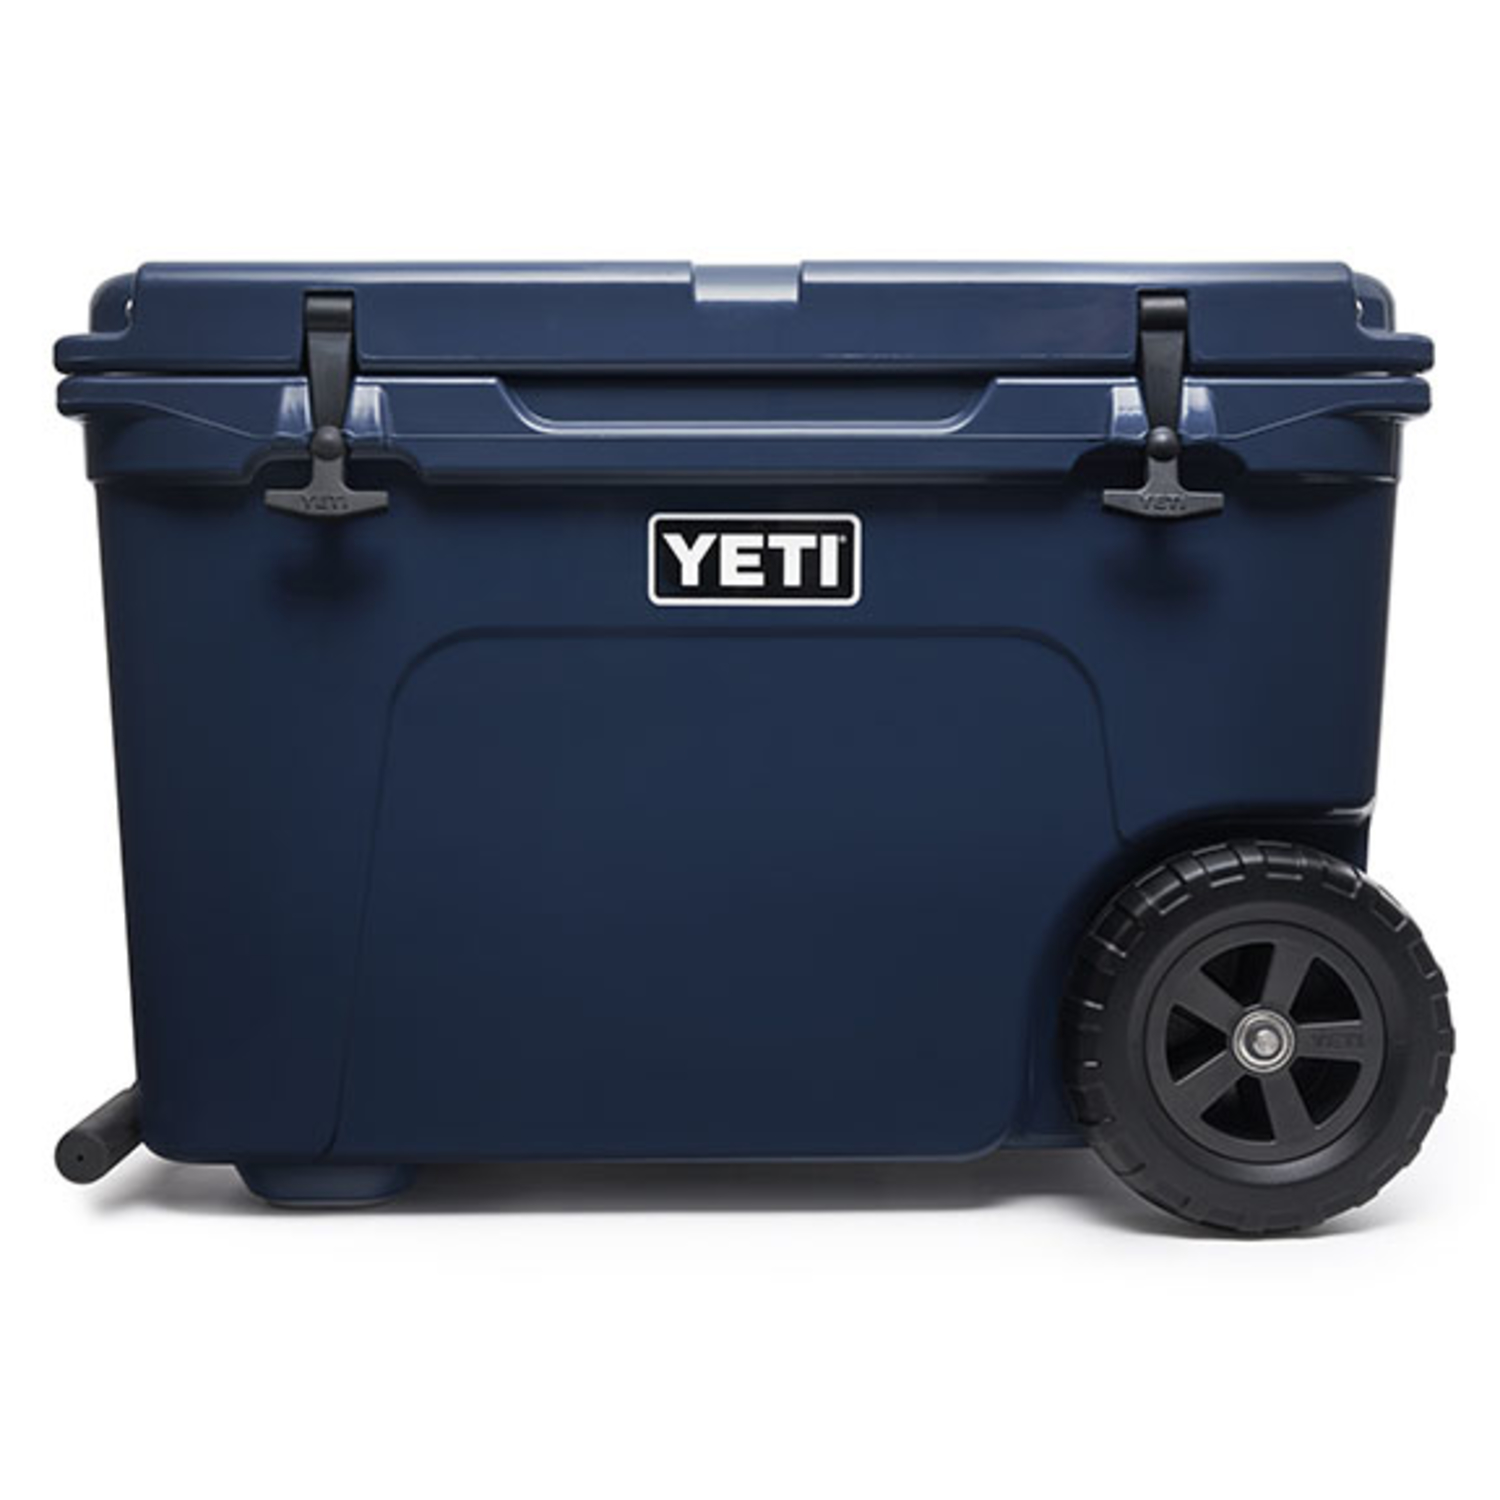 Hard-Sided Coolers